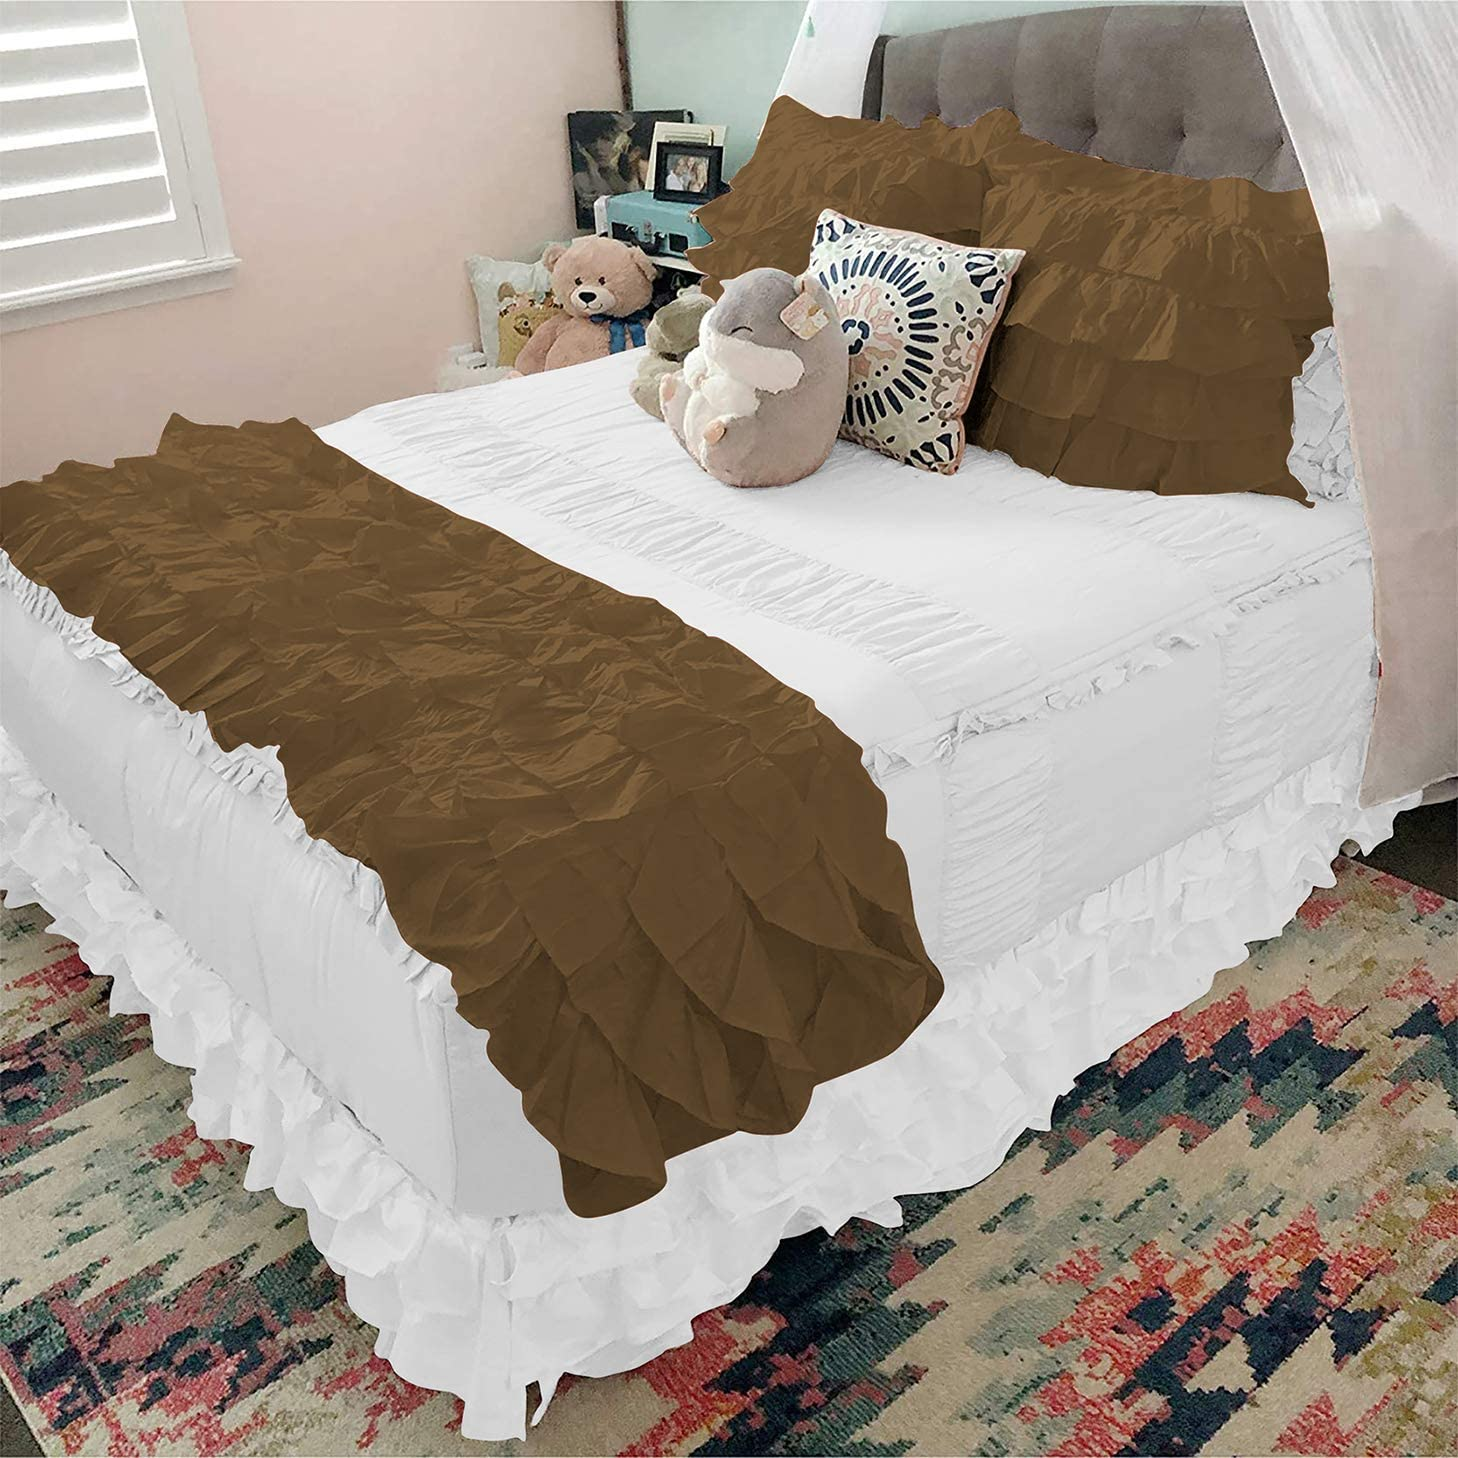 gk bedding 800 Thread Count Ruffle Bed with Pi Detroit Mall 4 5 Runner Pieces Phoenix Mall